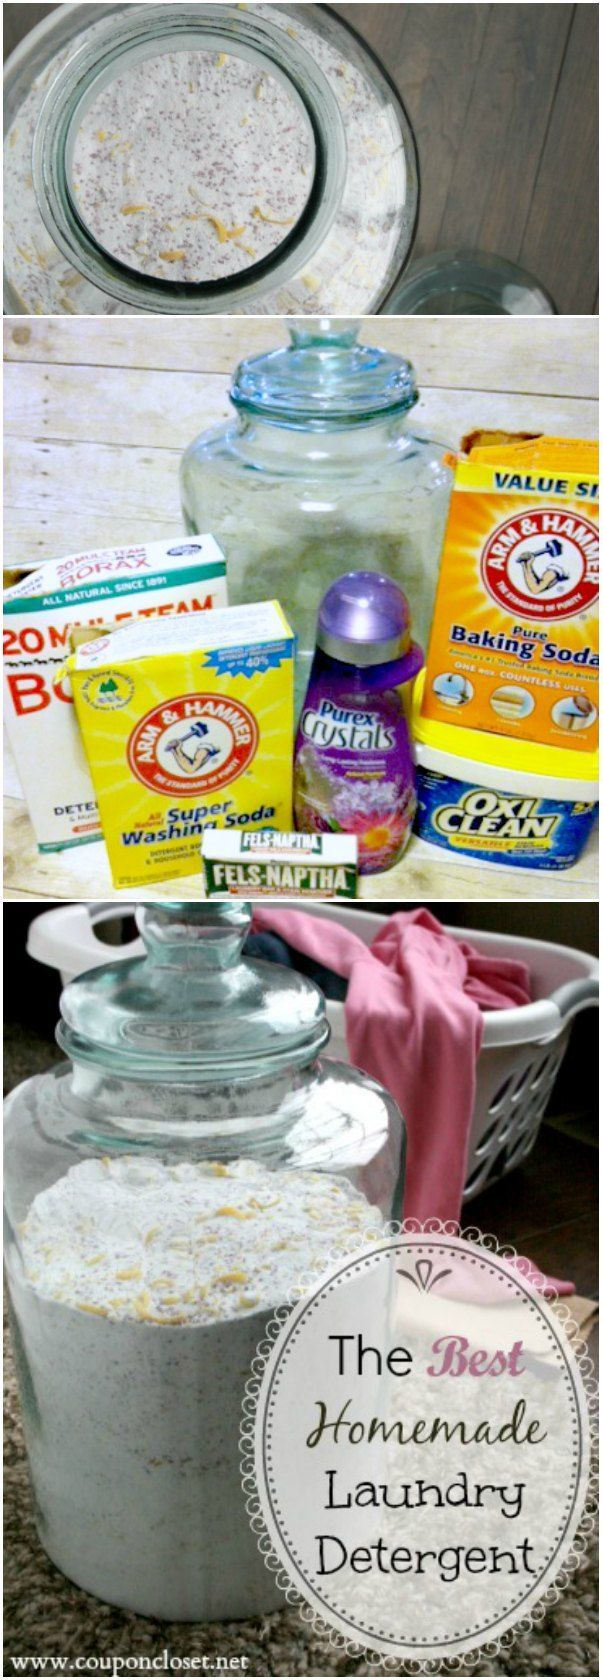 How to make Homemade Laundry Detergent. This easy to make homemade laundry soap is very frugal. Homemade laundry detergent for HE washers too!